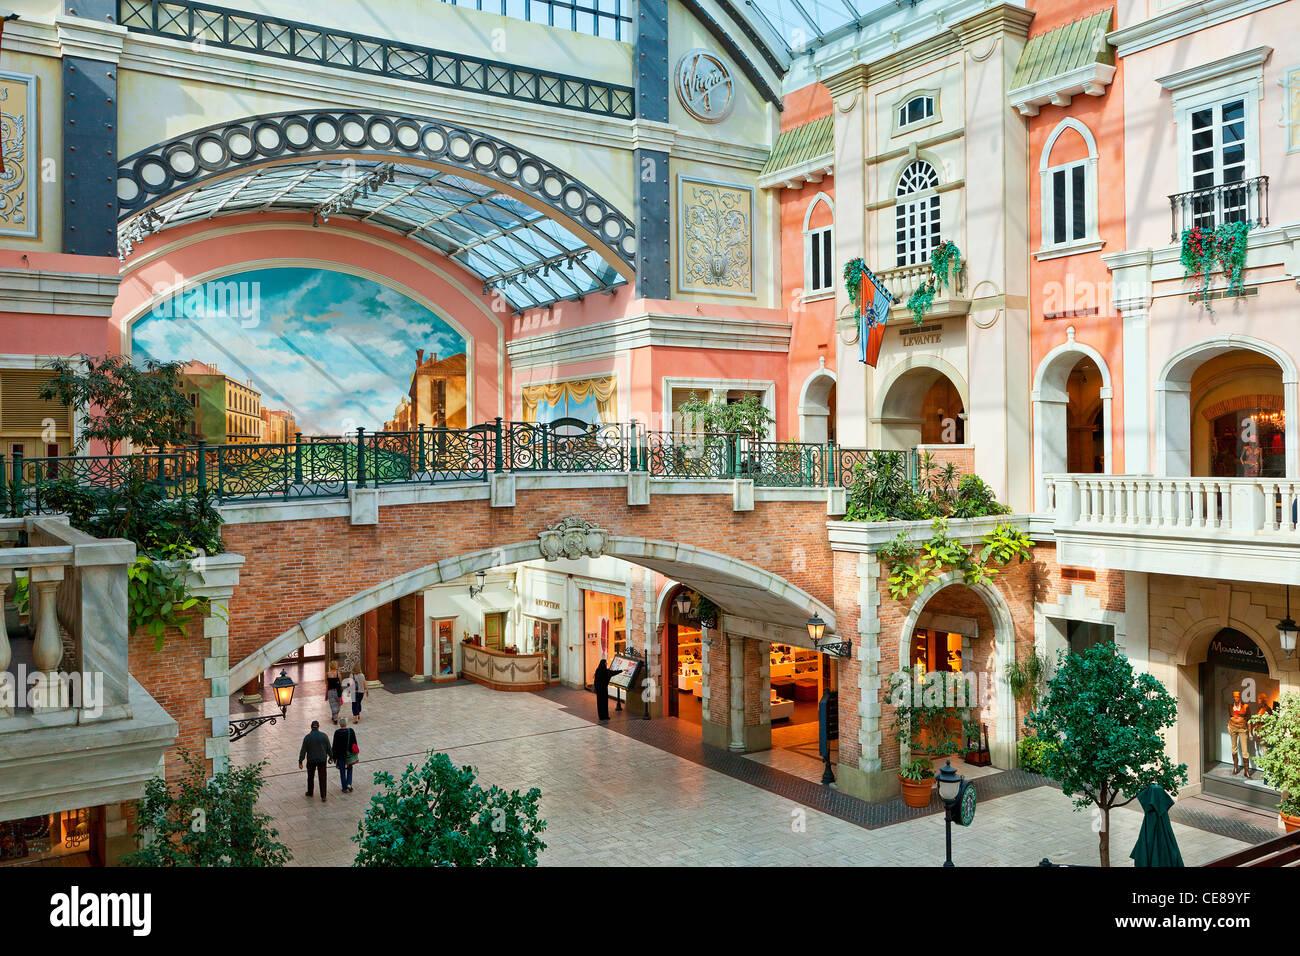 Dubai, Jumeirah, Mercato Shopping Mall Stock Photo